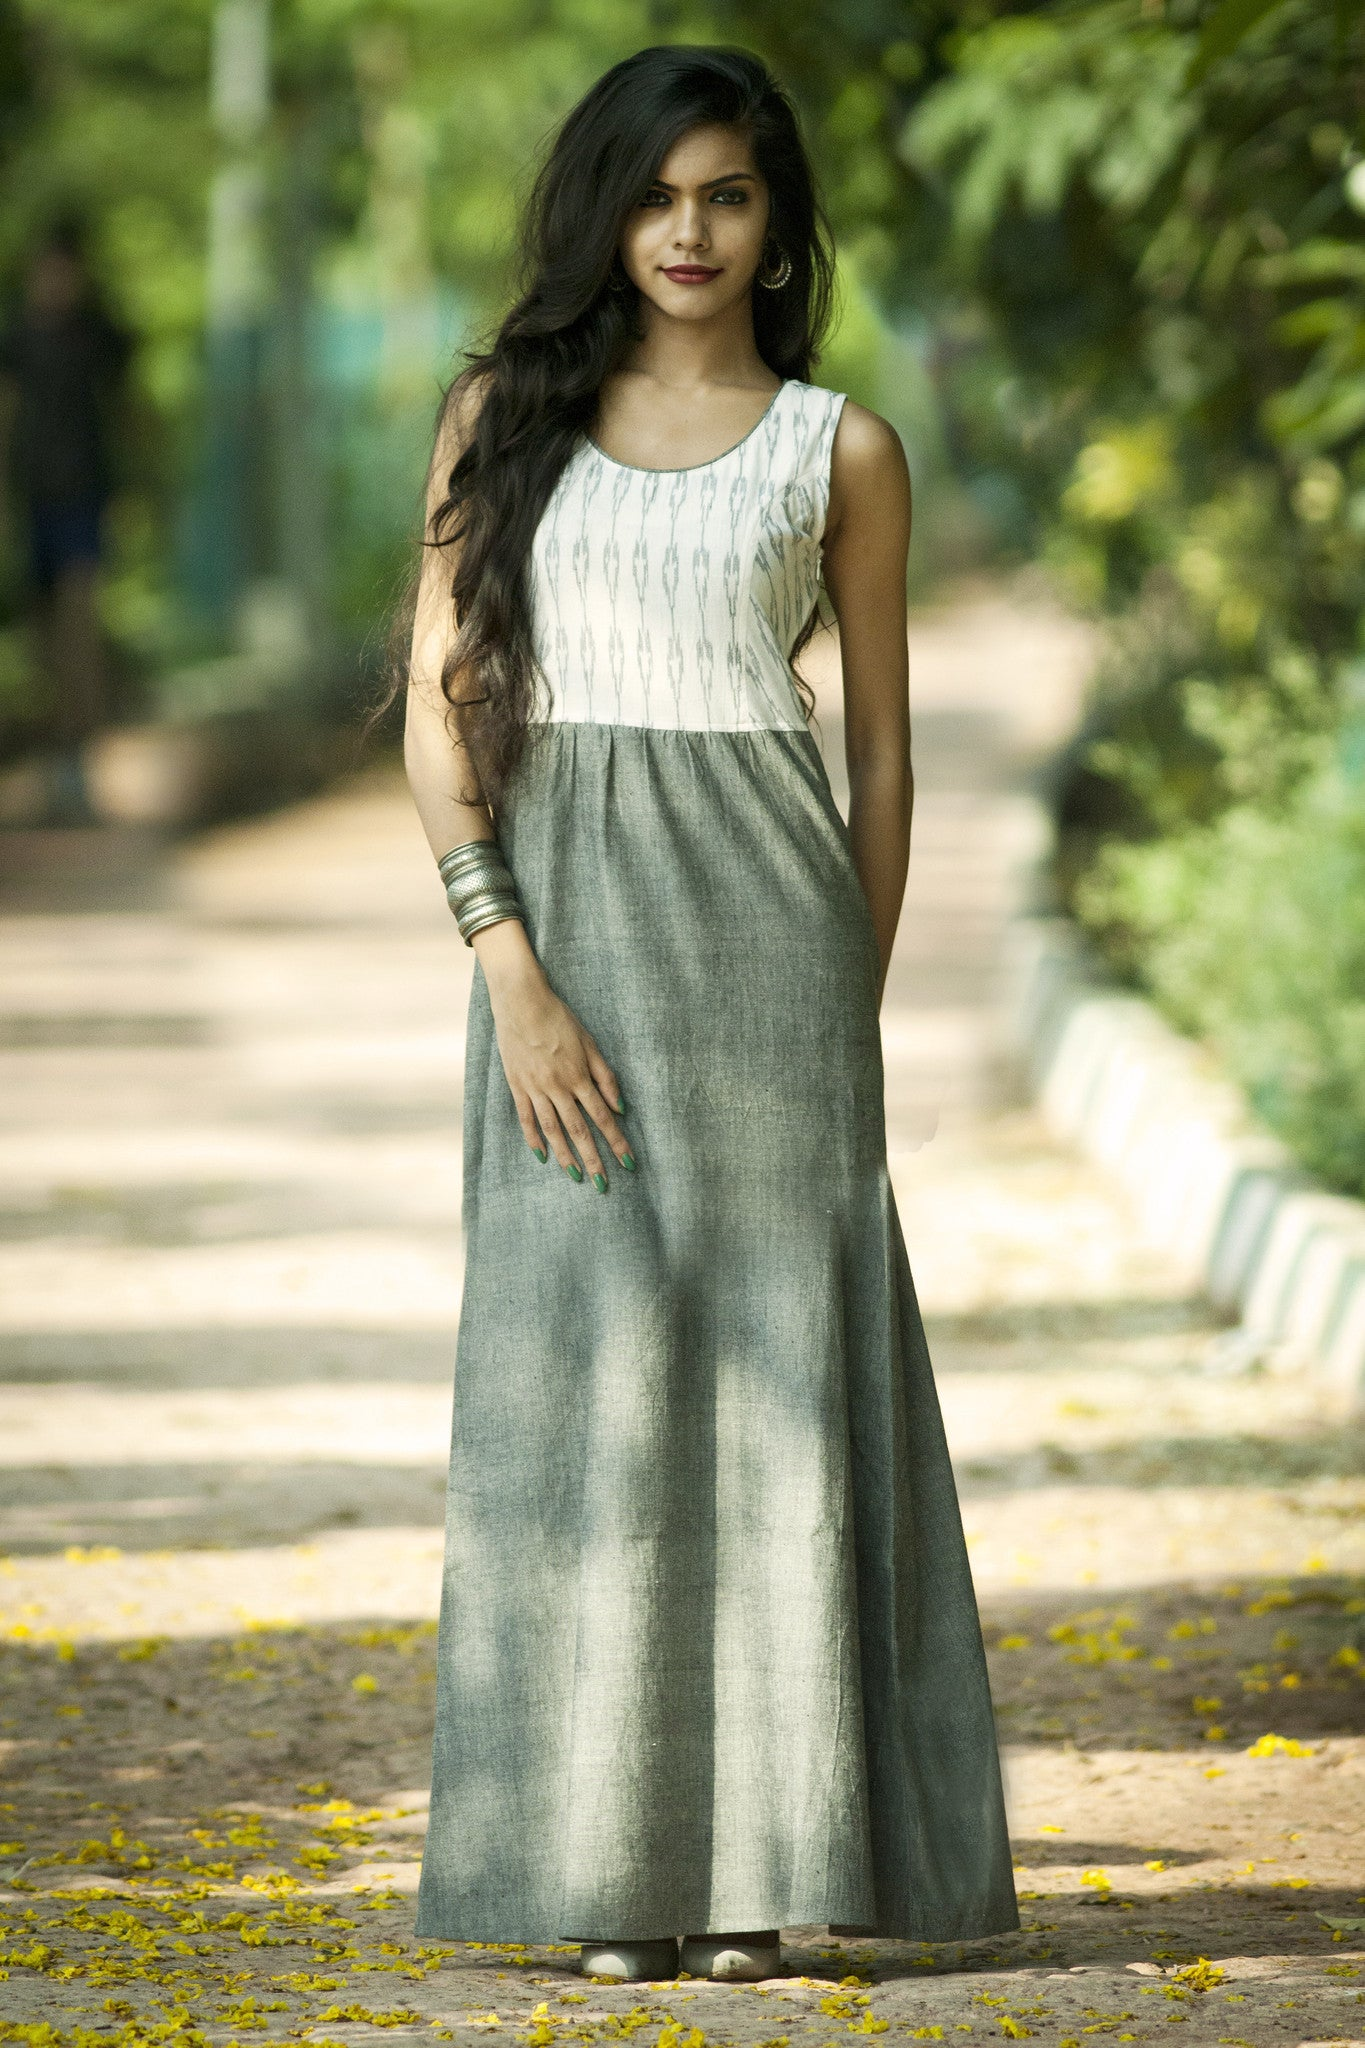 Model is wearing the summer dream maxi in white black ikat with grey cotton.